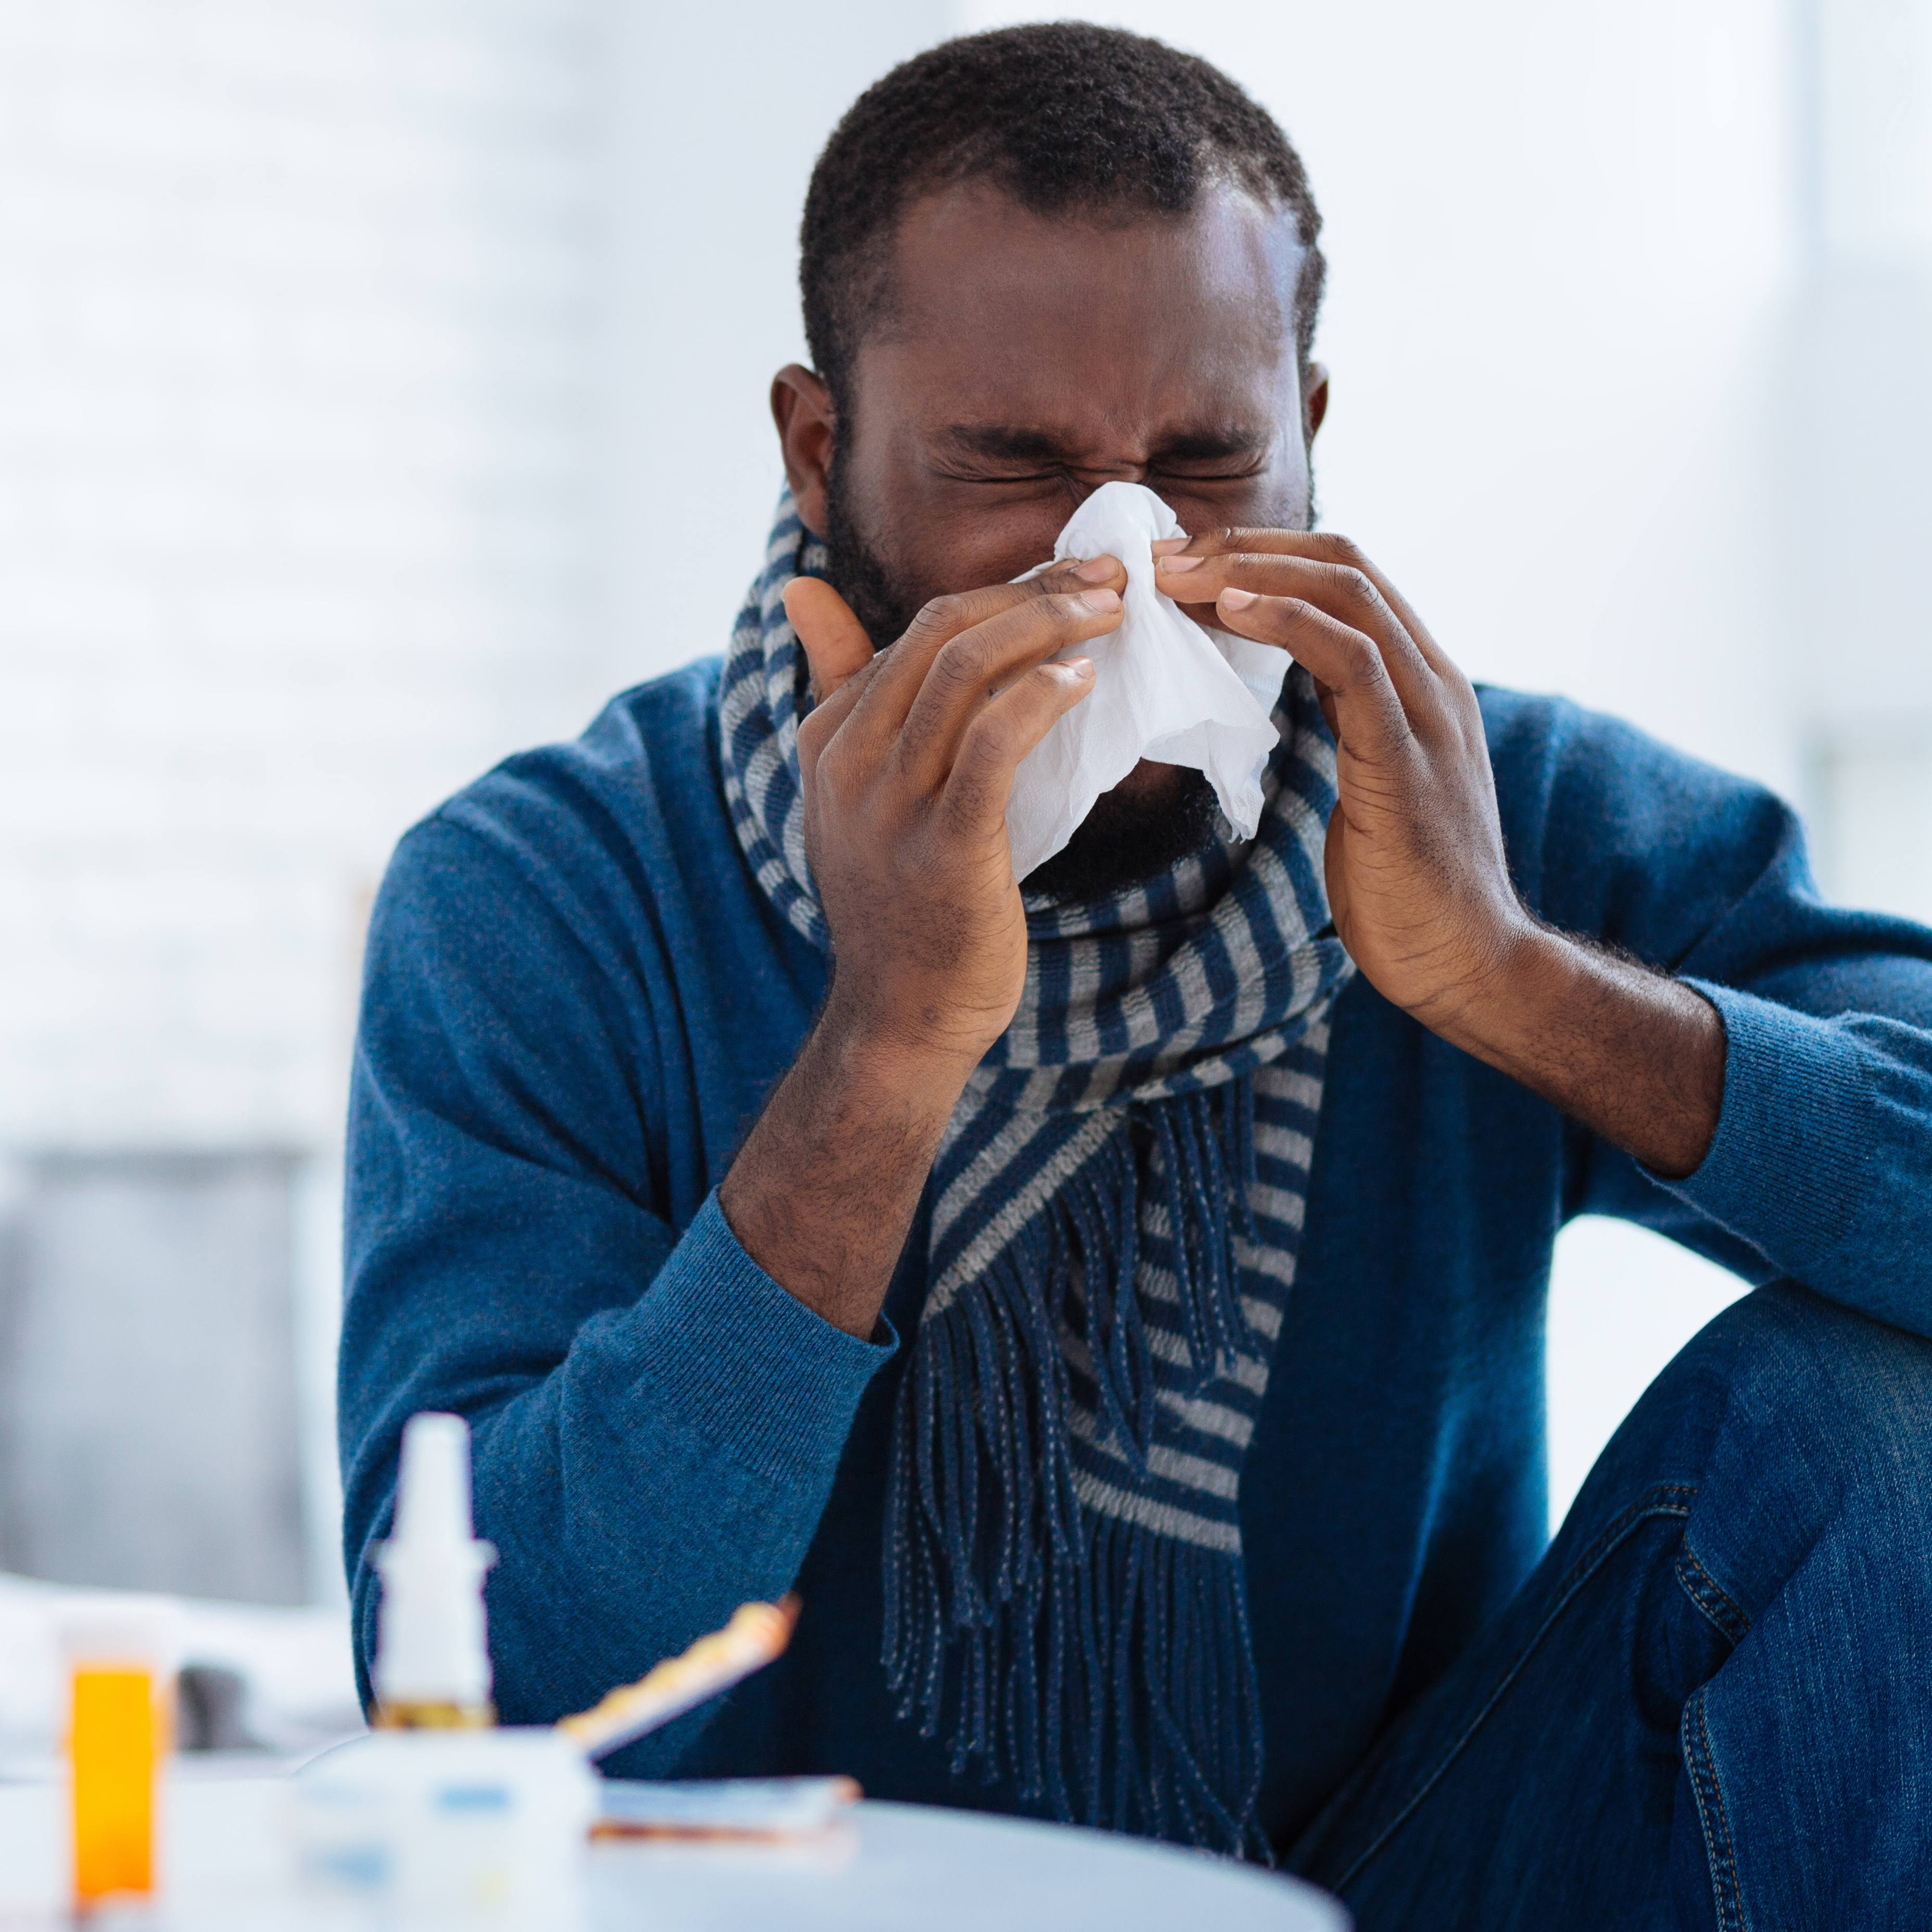 An African American man in blue jeans and a blue sweater blowing his nose into a tissue or sneezing, feeling sick with a cold, allergies or a flu bug